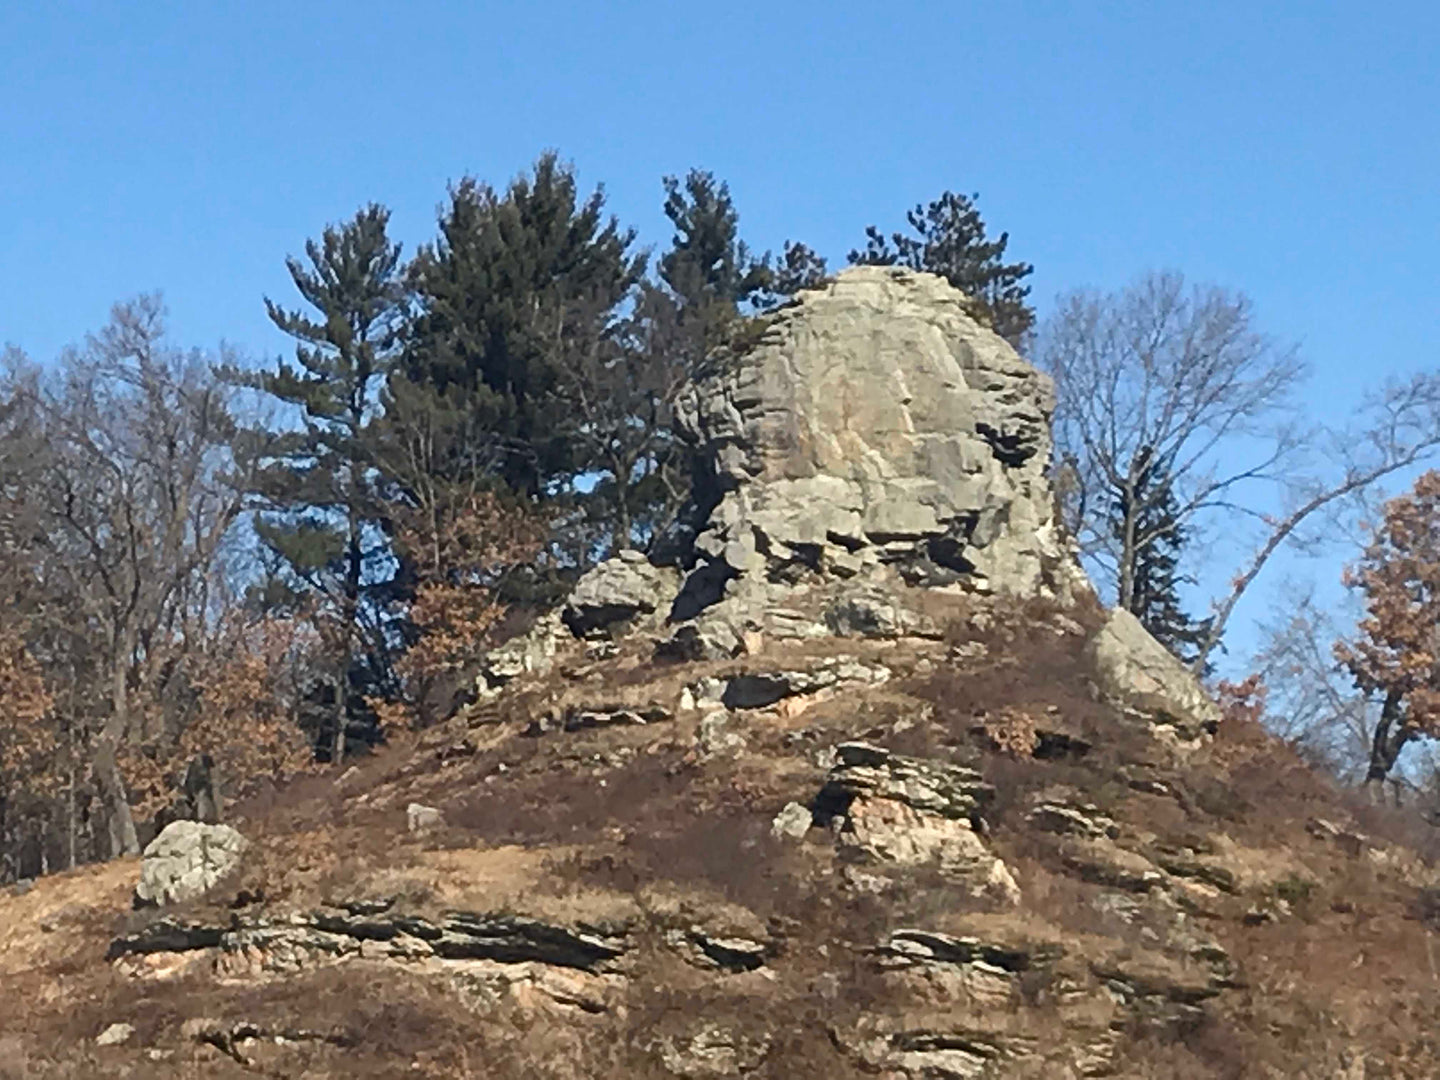 Donald Rock is an emblem of Donald Park near Mt. Vernon, Wisconsin